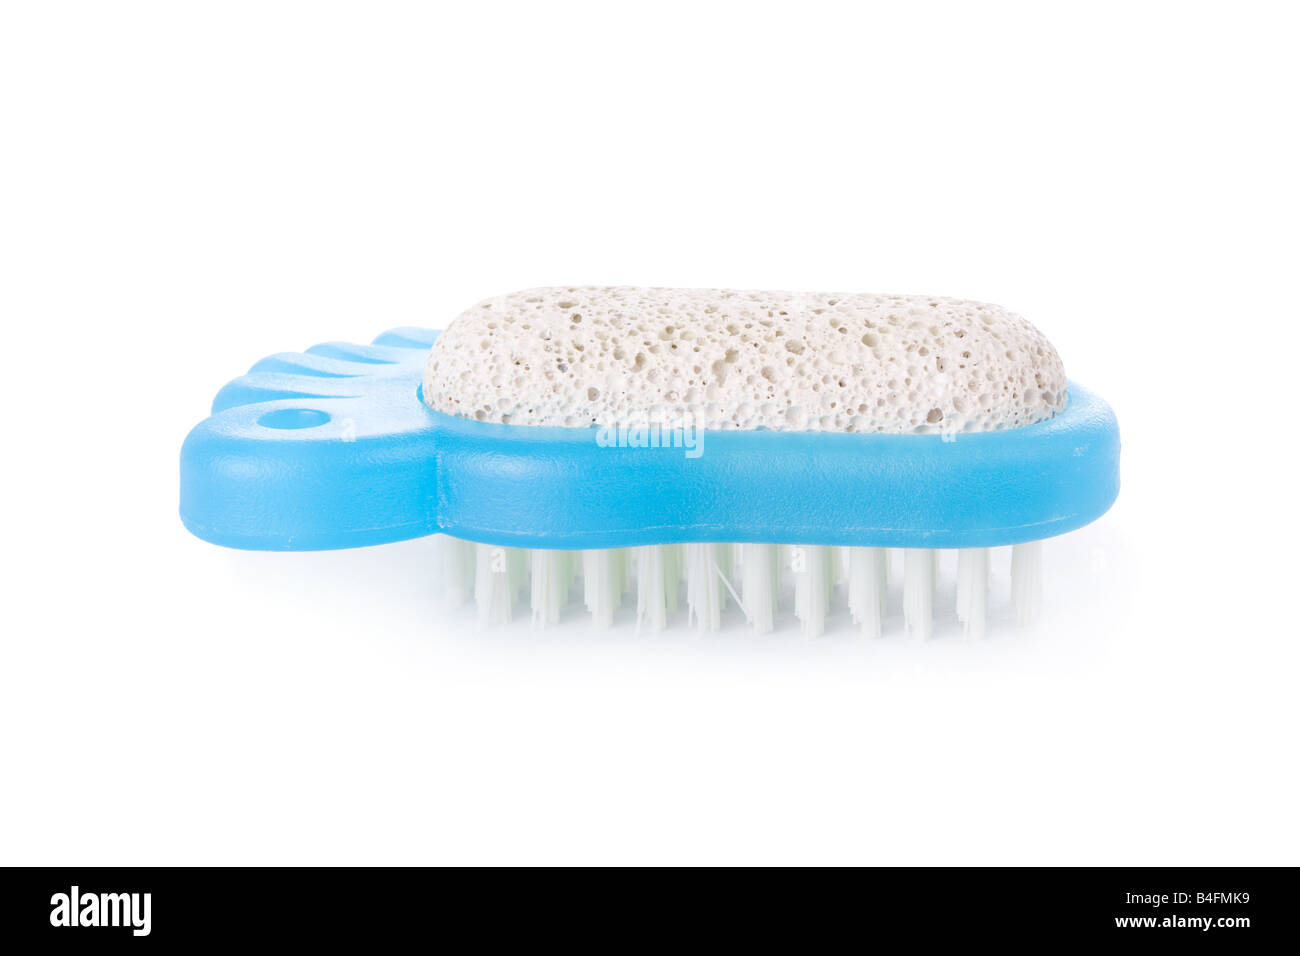 Brush and pumice stone for foot care isolated on white background - Stock Image